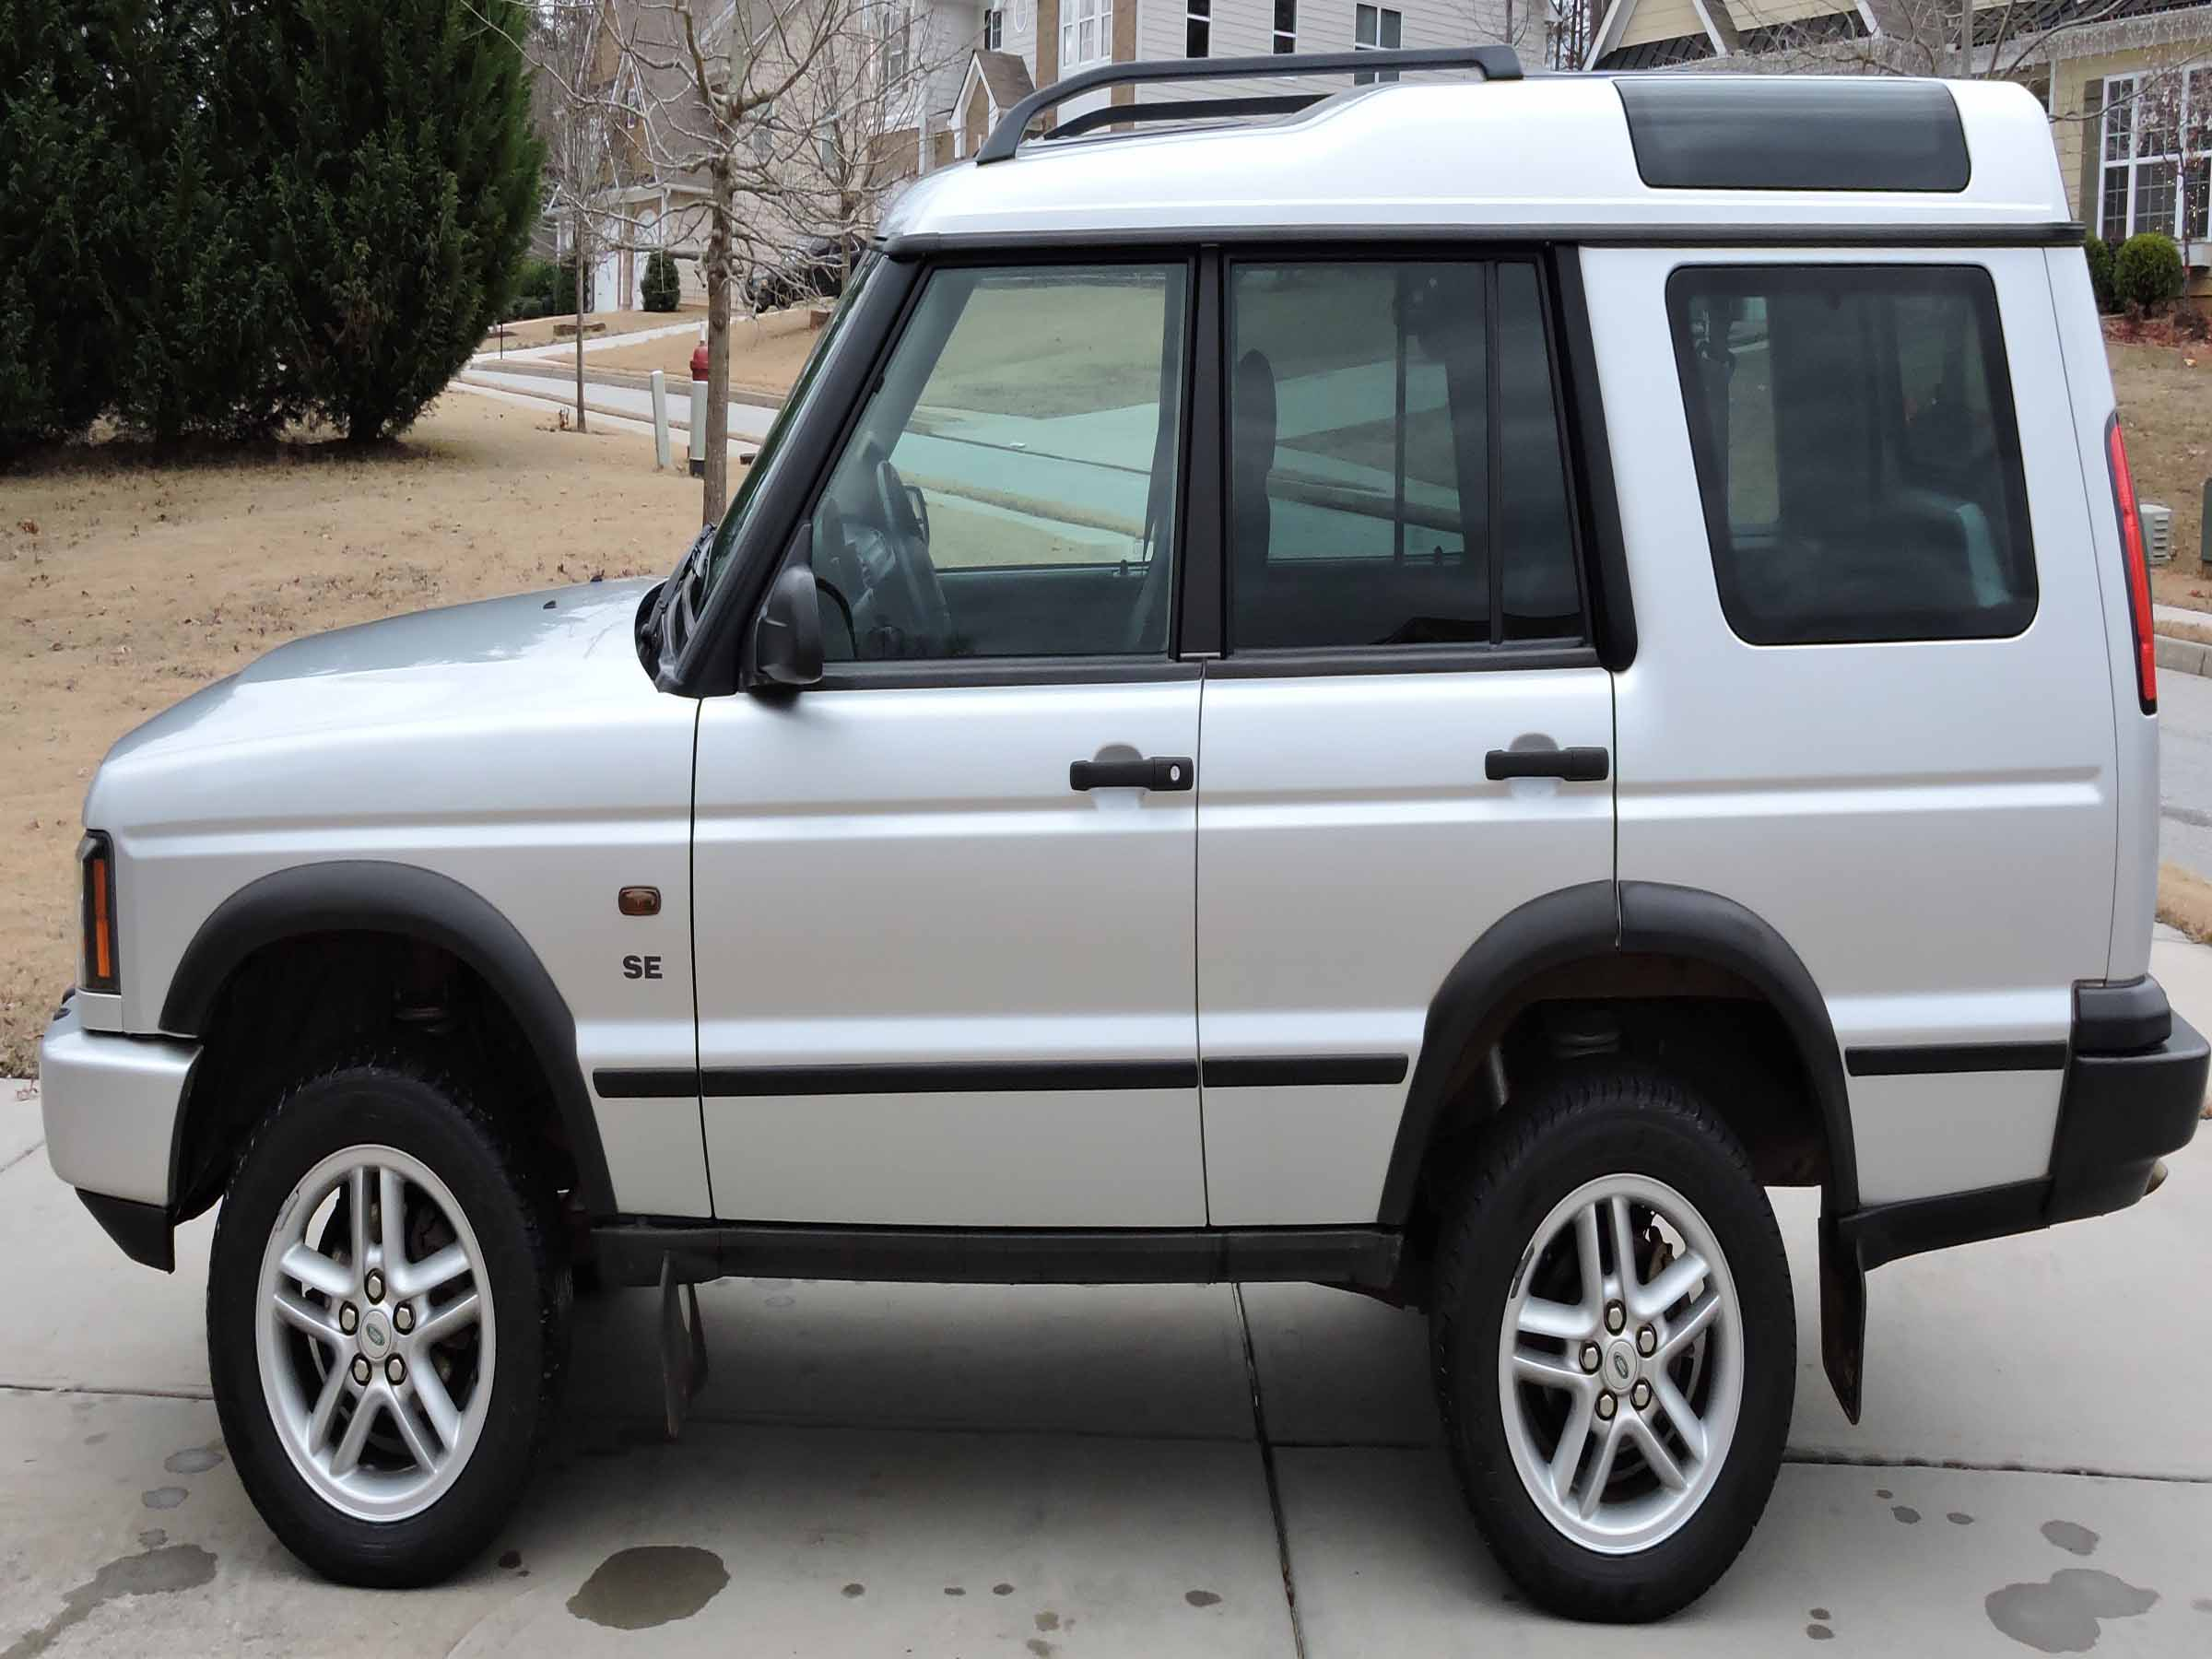 2003 Land Rover Discovery SE Land Rover Forums Land Rover